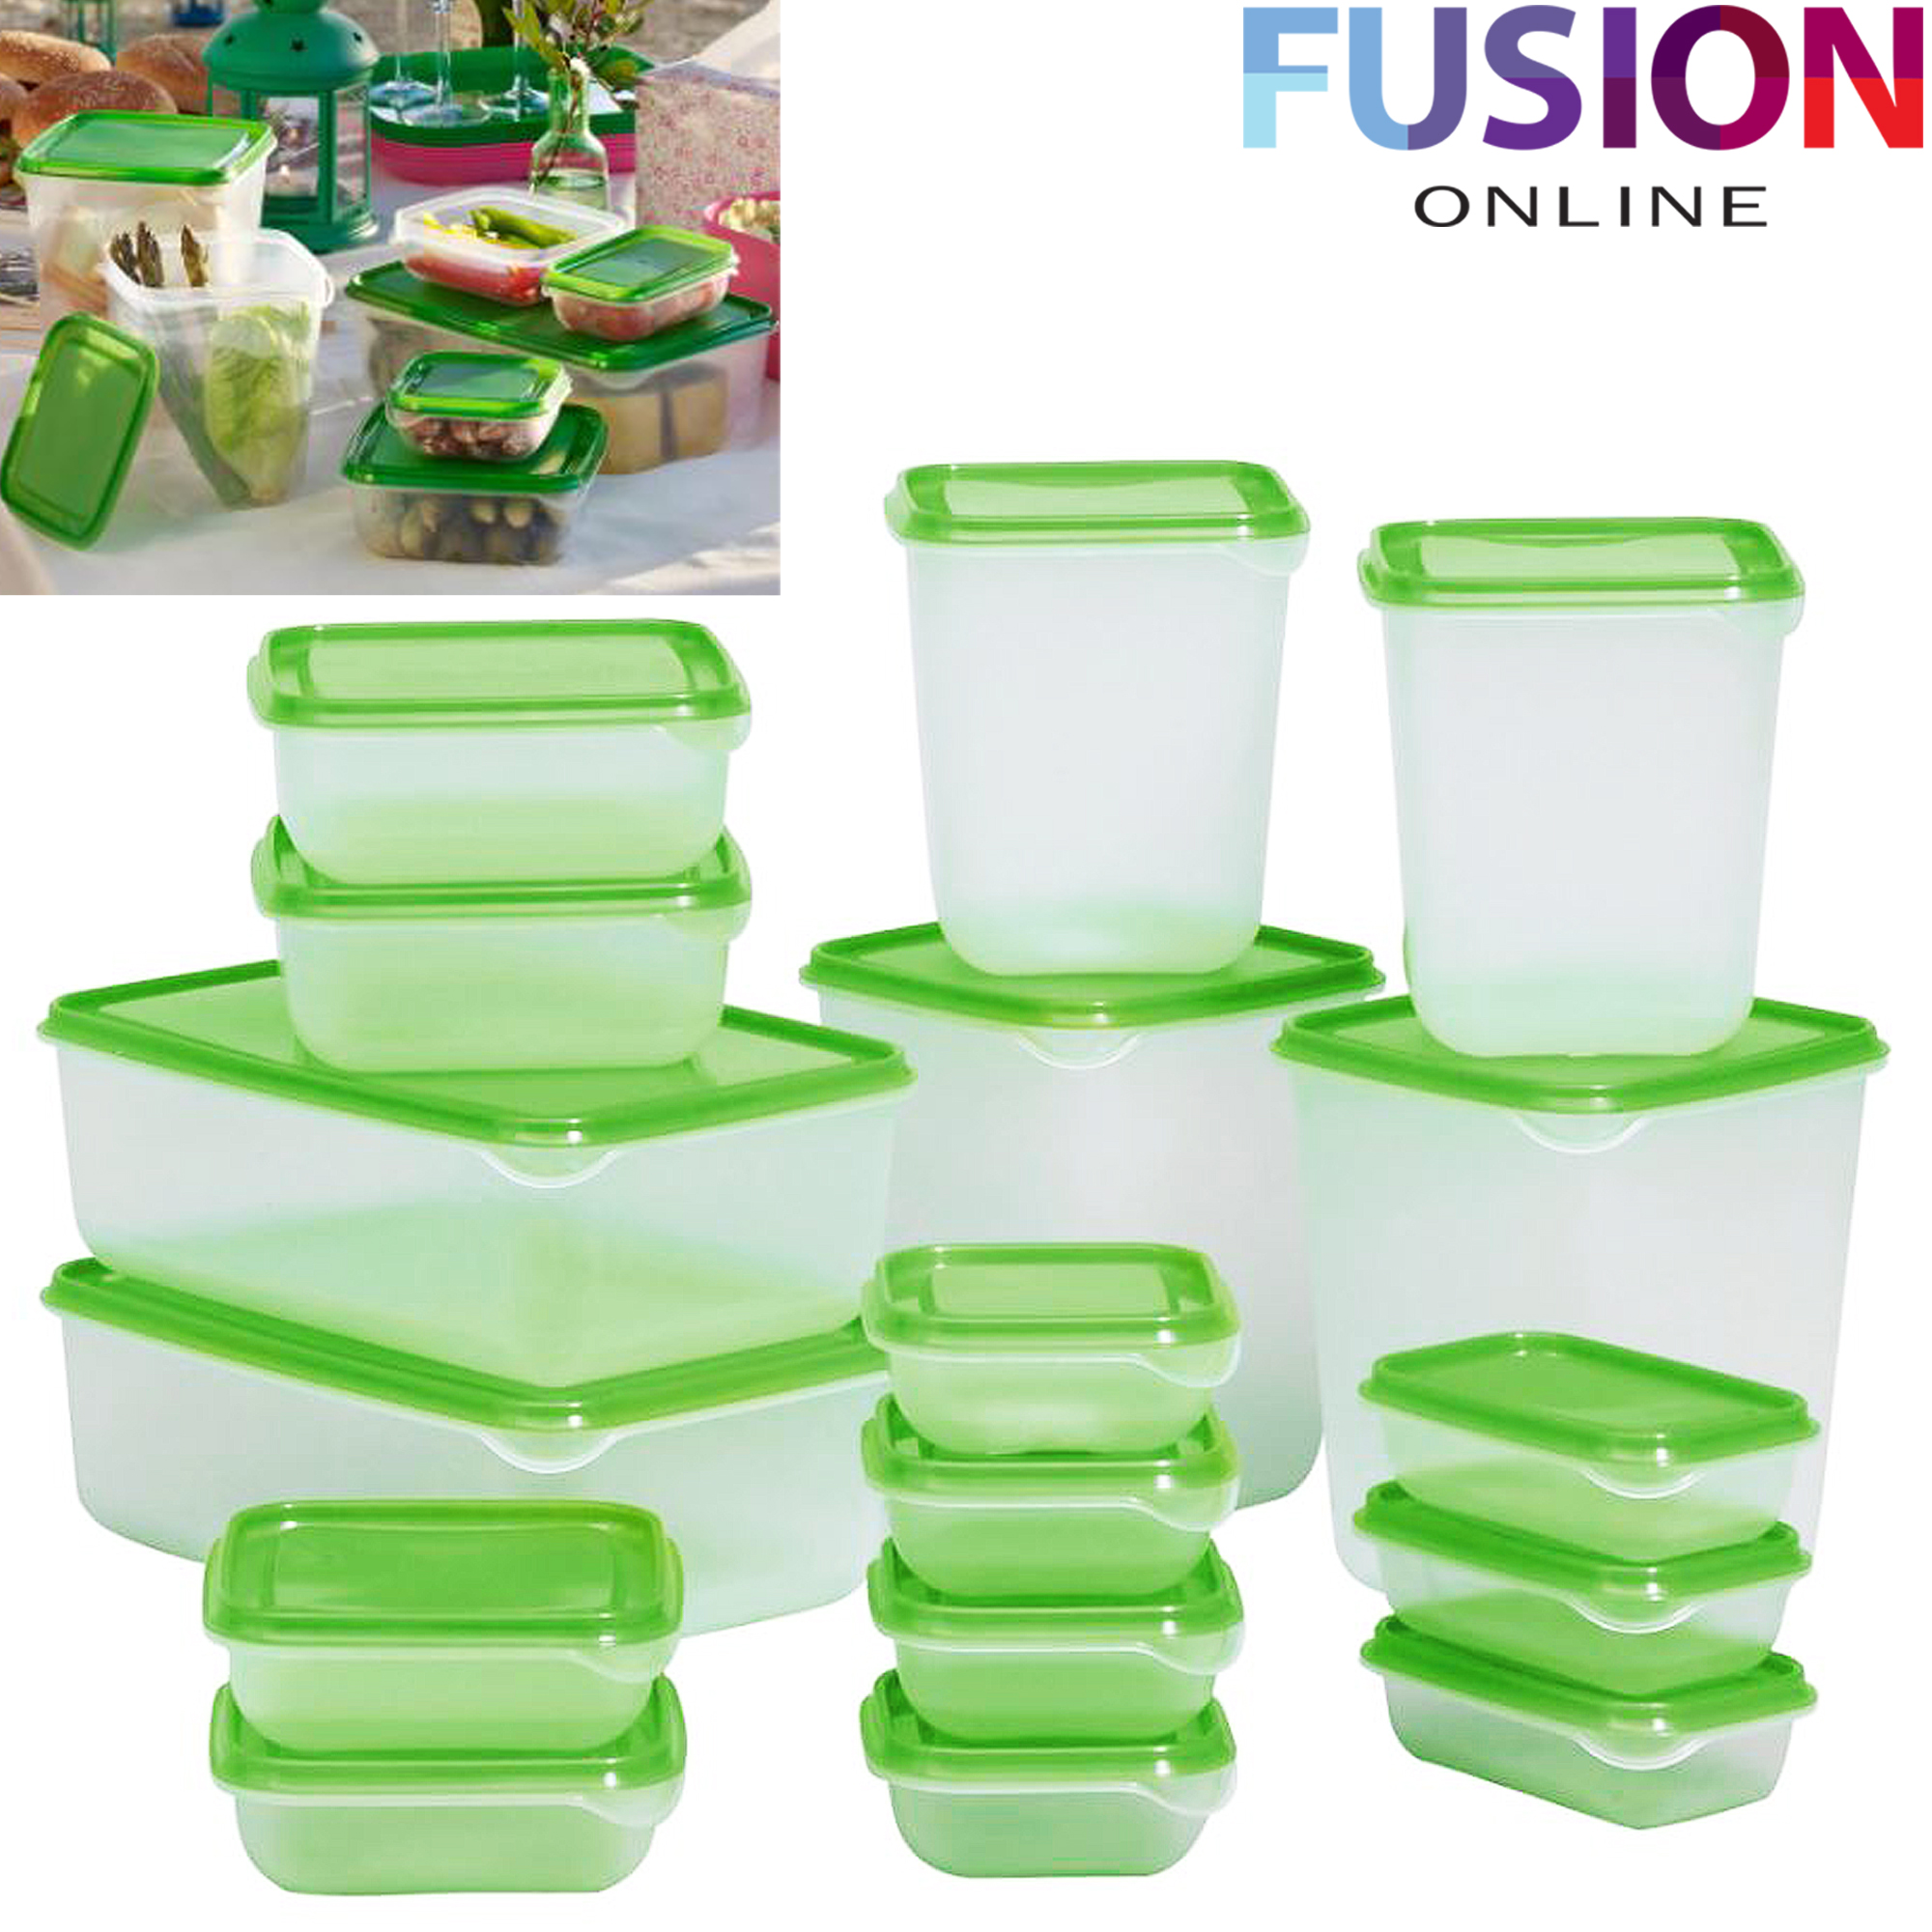 ikea pruta 17 pcs green plastic food containers storer storage box boxes 5056074354094 ebay. Black Bedroom Furniture Sets. Home Design Ideas